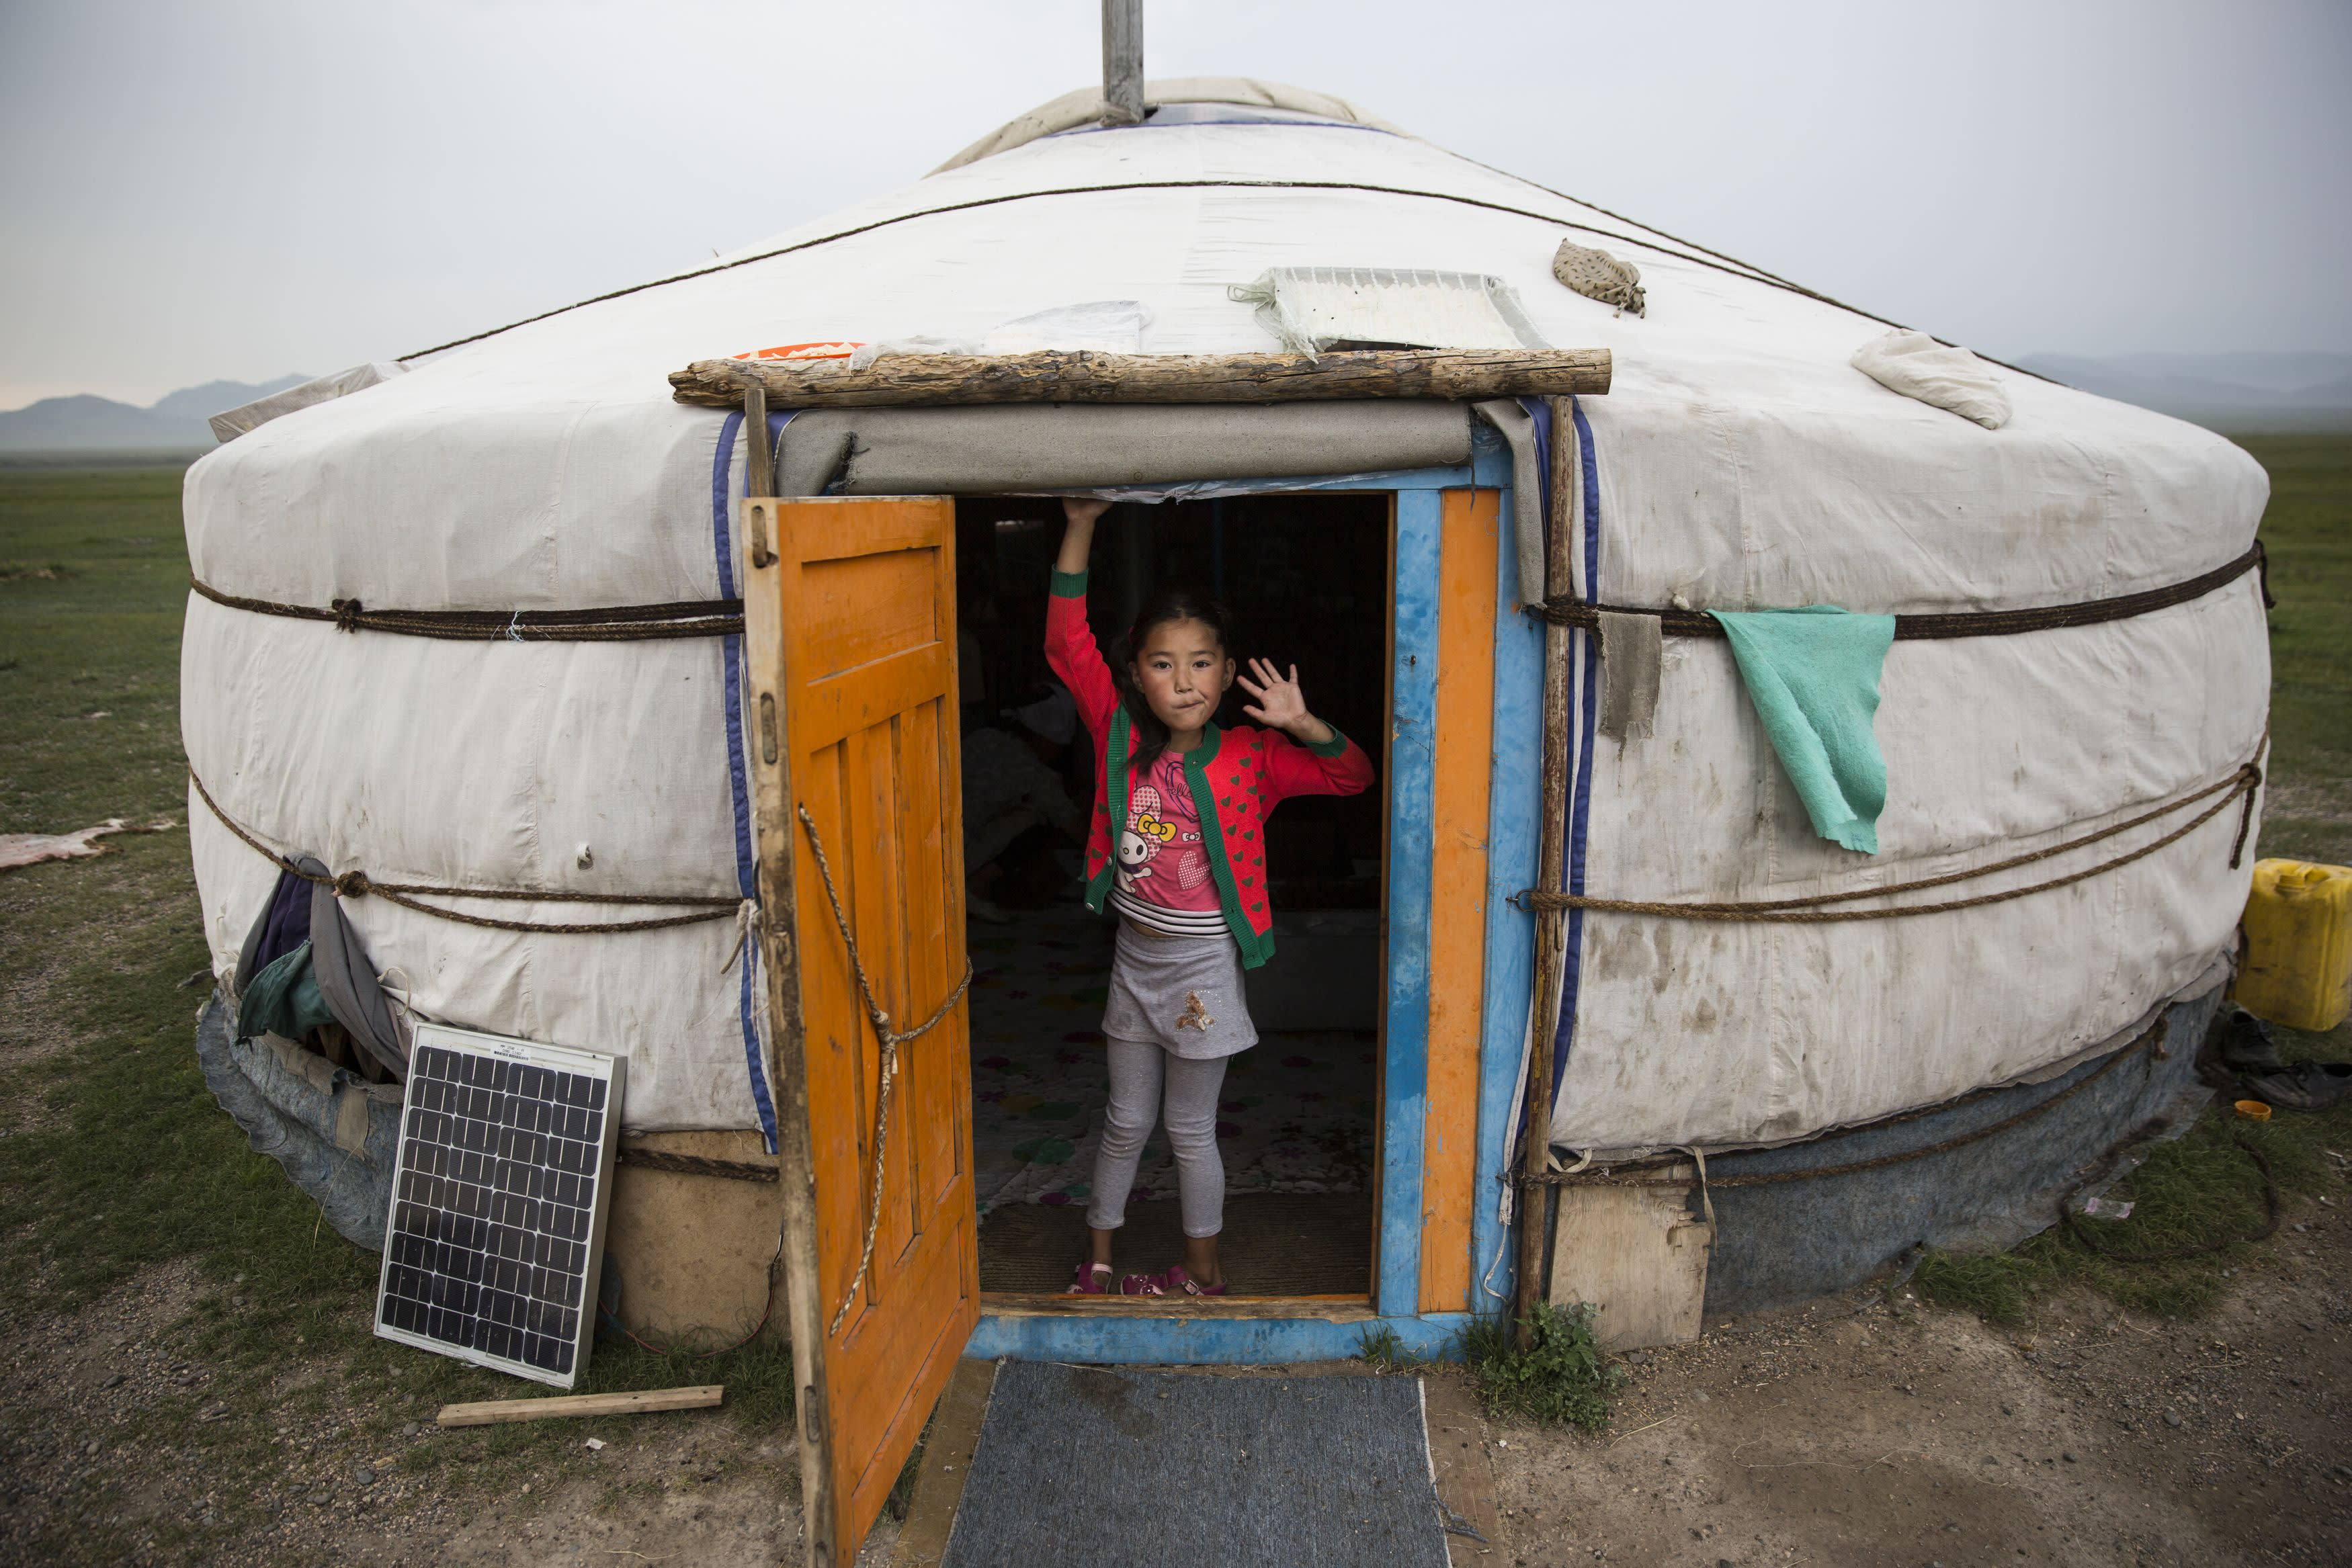 20161020_Mongolia_AirBnB_001_girl-stands